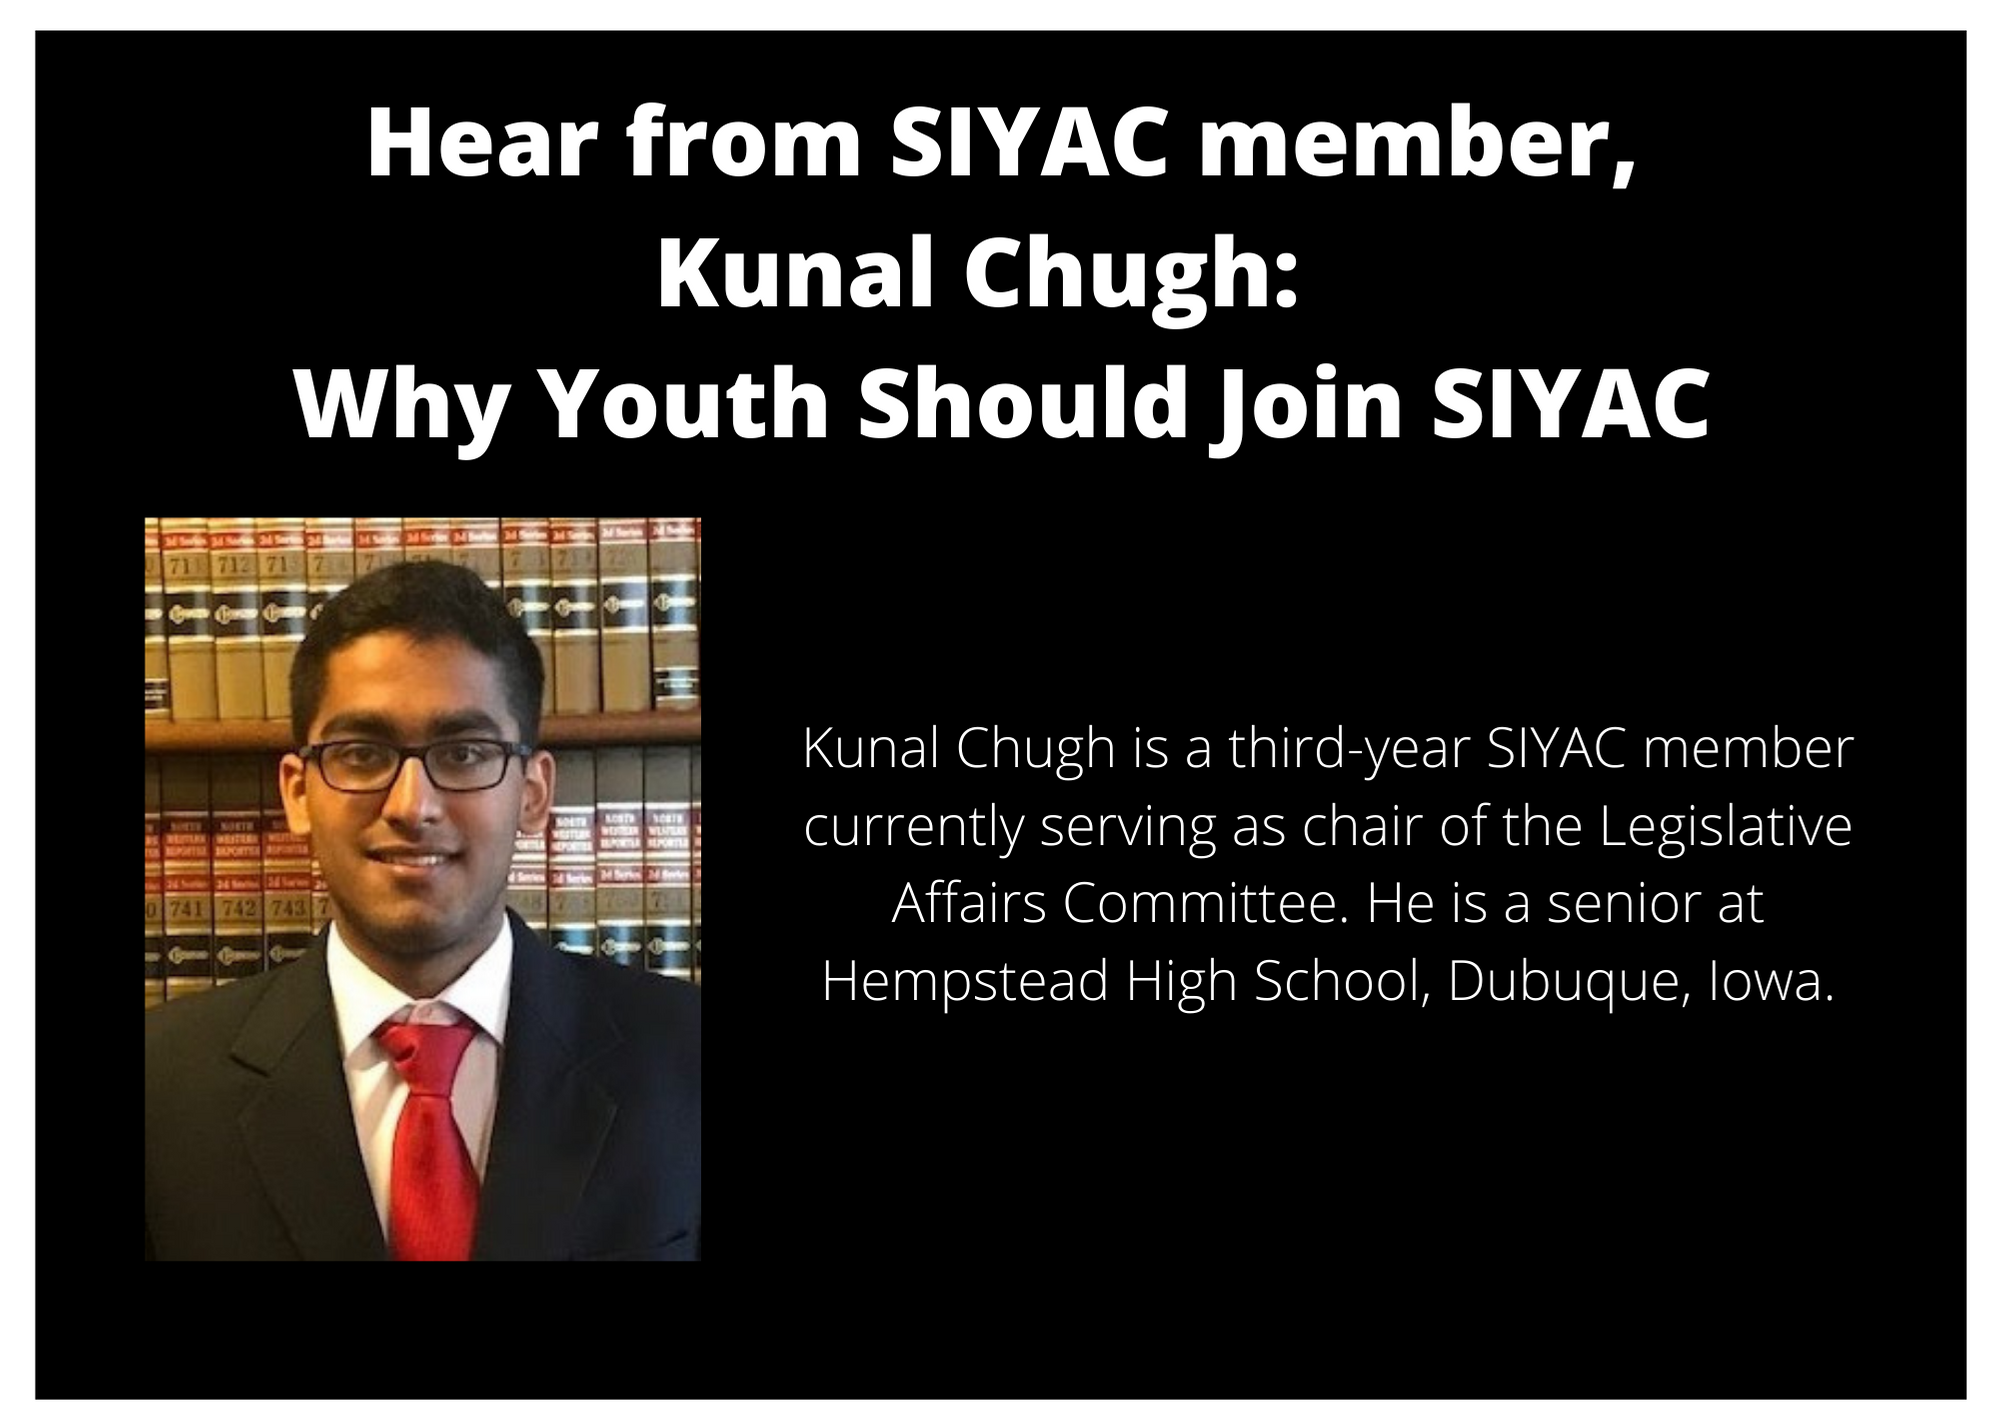 Hear from SIYAC member Kunal Chugh (1)